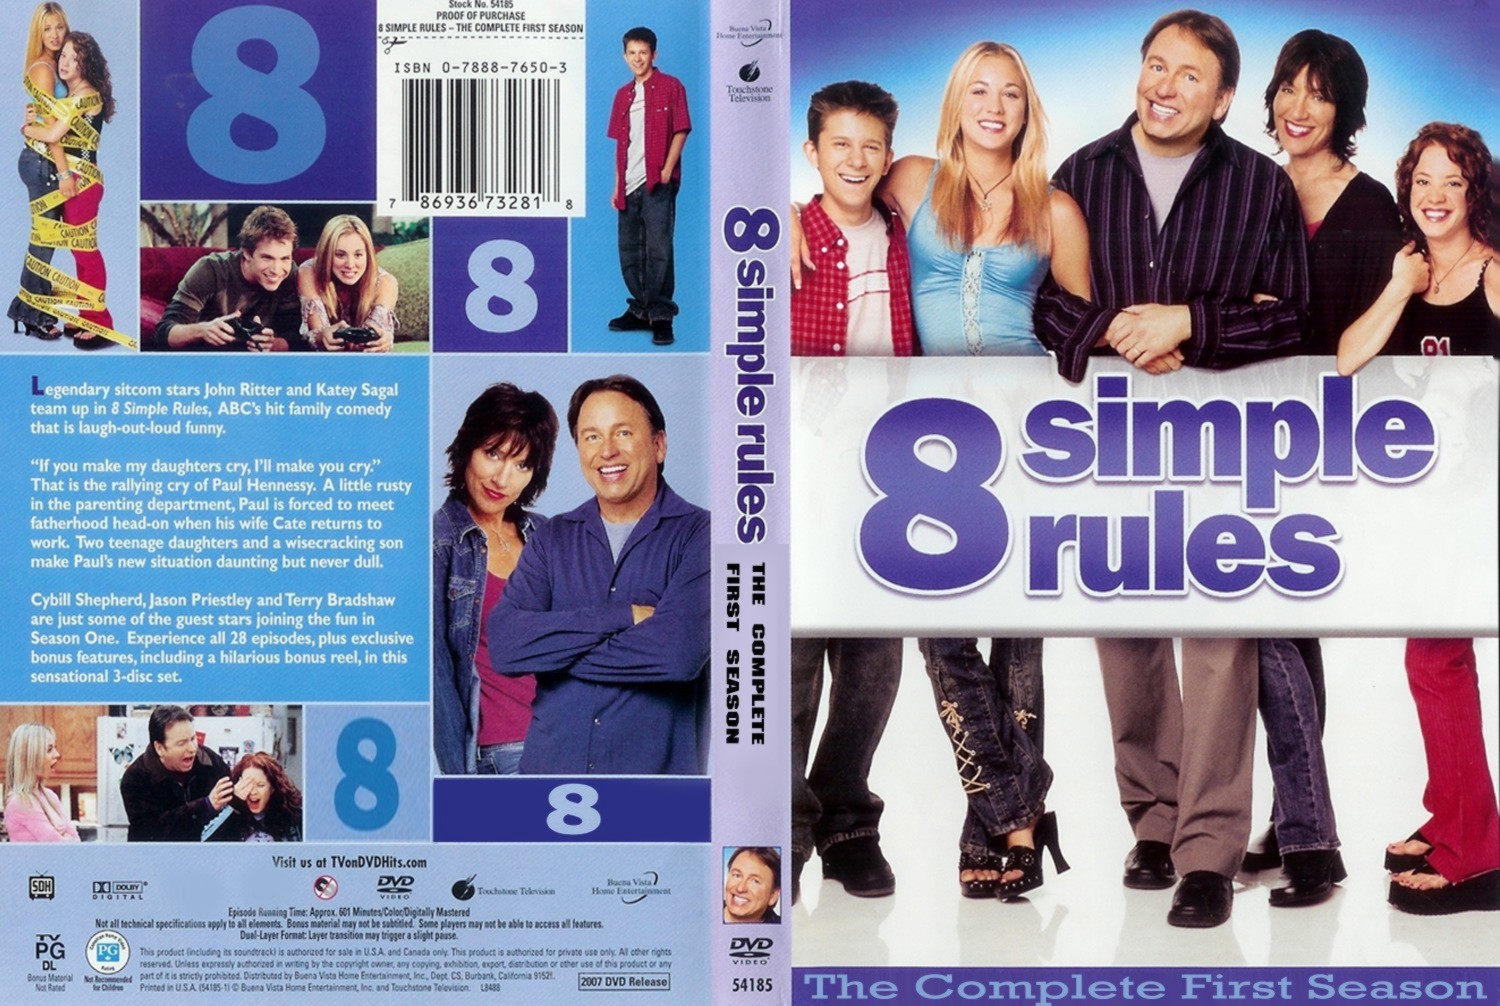 dating rules revisited The rules - revisited i recently re-read the 1995 book the rules: released just as online dating was becoming a trend, this book seemed so wrong.